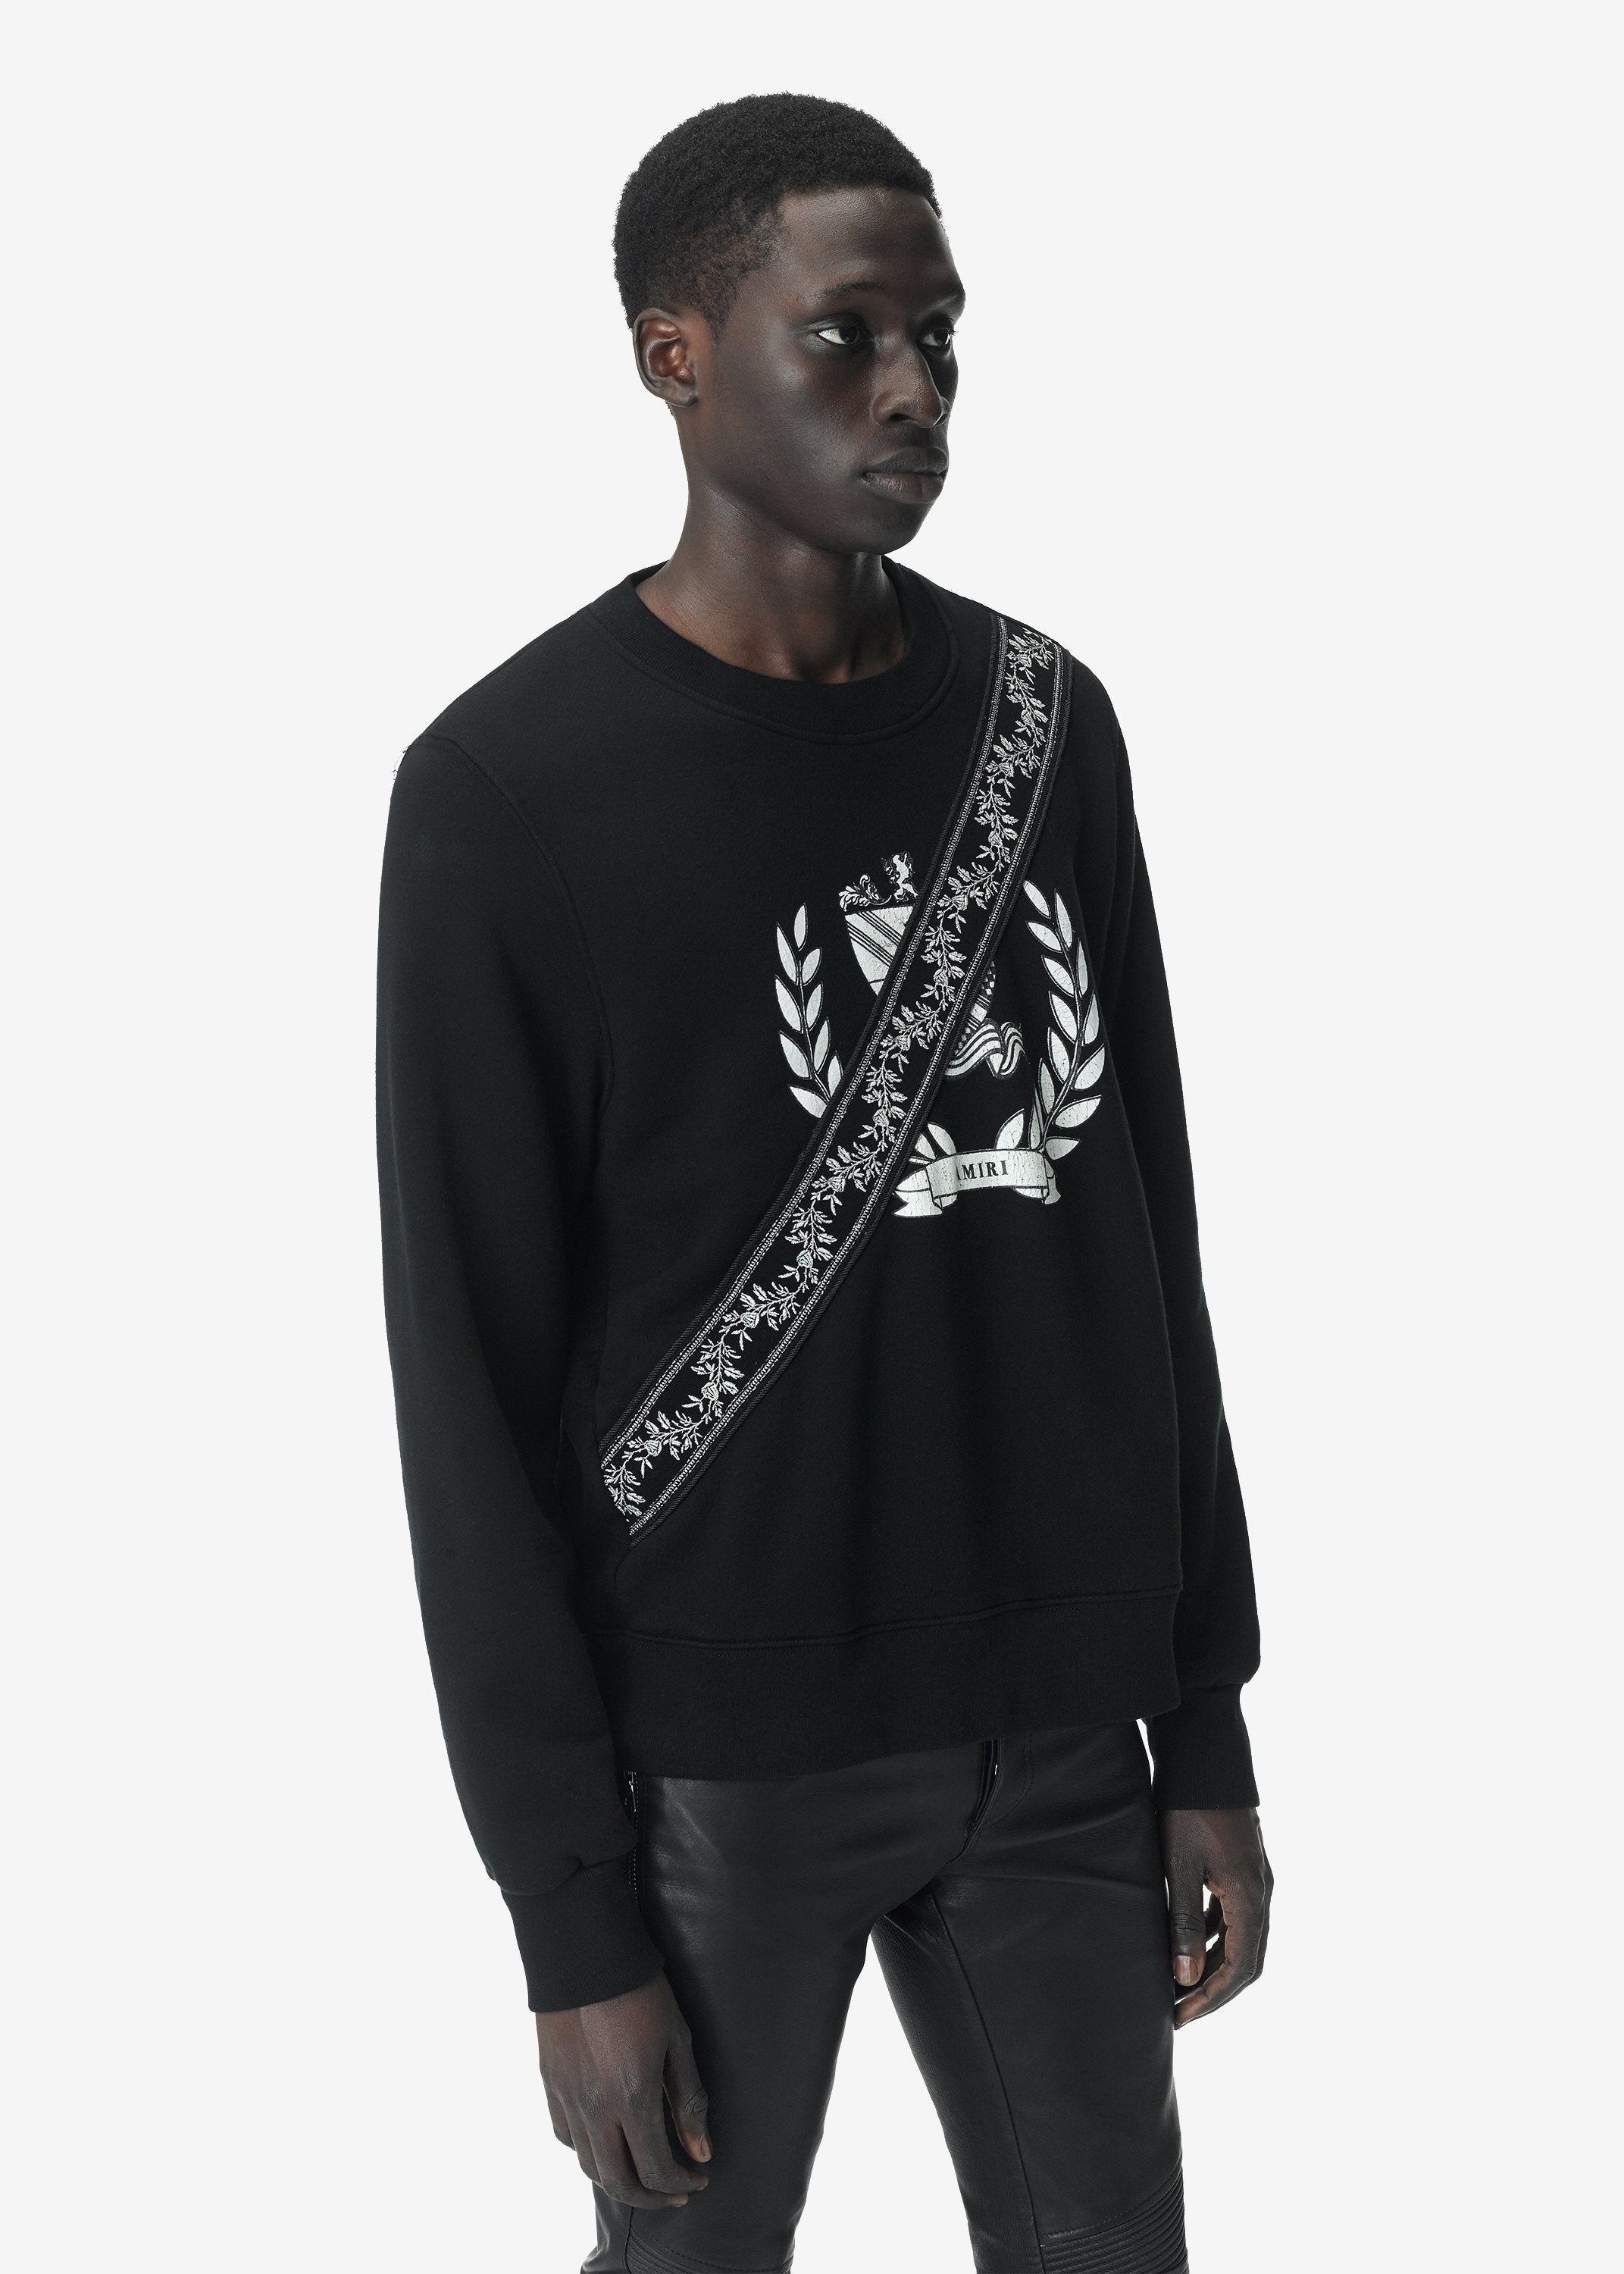 crest-guitar-strap-crewneck-web-exclusive-black-image-4